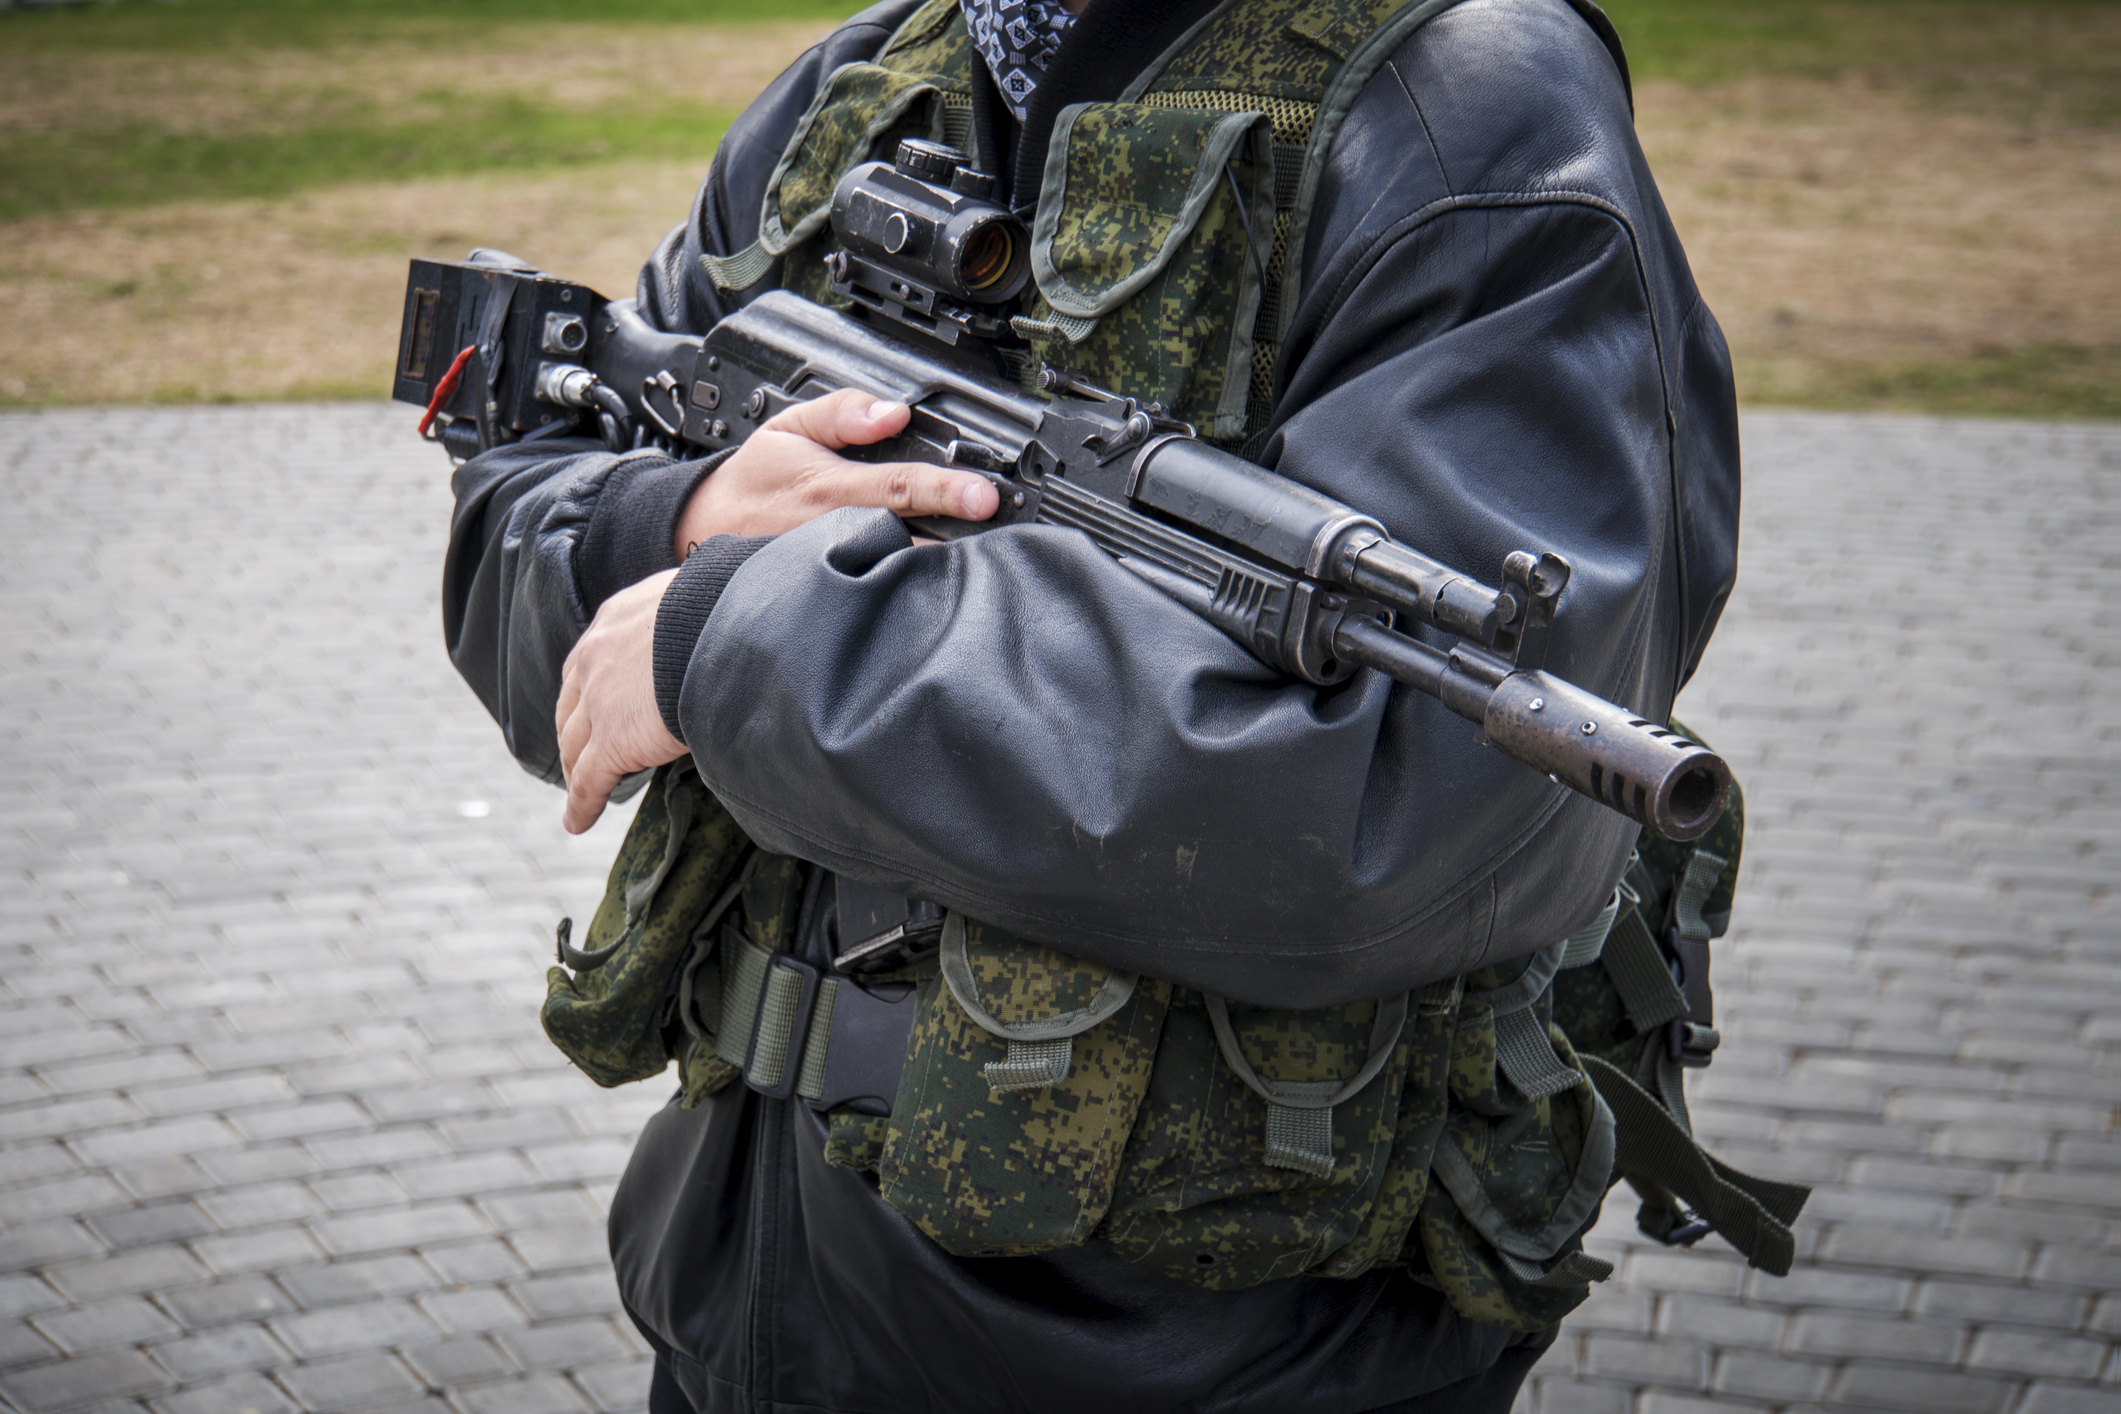 a man with a machine gun. male men's hands holding a rifle. Irregular troops. unprofessional military. Militiaman. Kalashnikov assault rifle with laser sniper scope. separatists. Image credit: Diy13